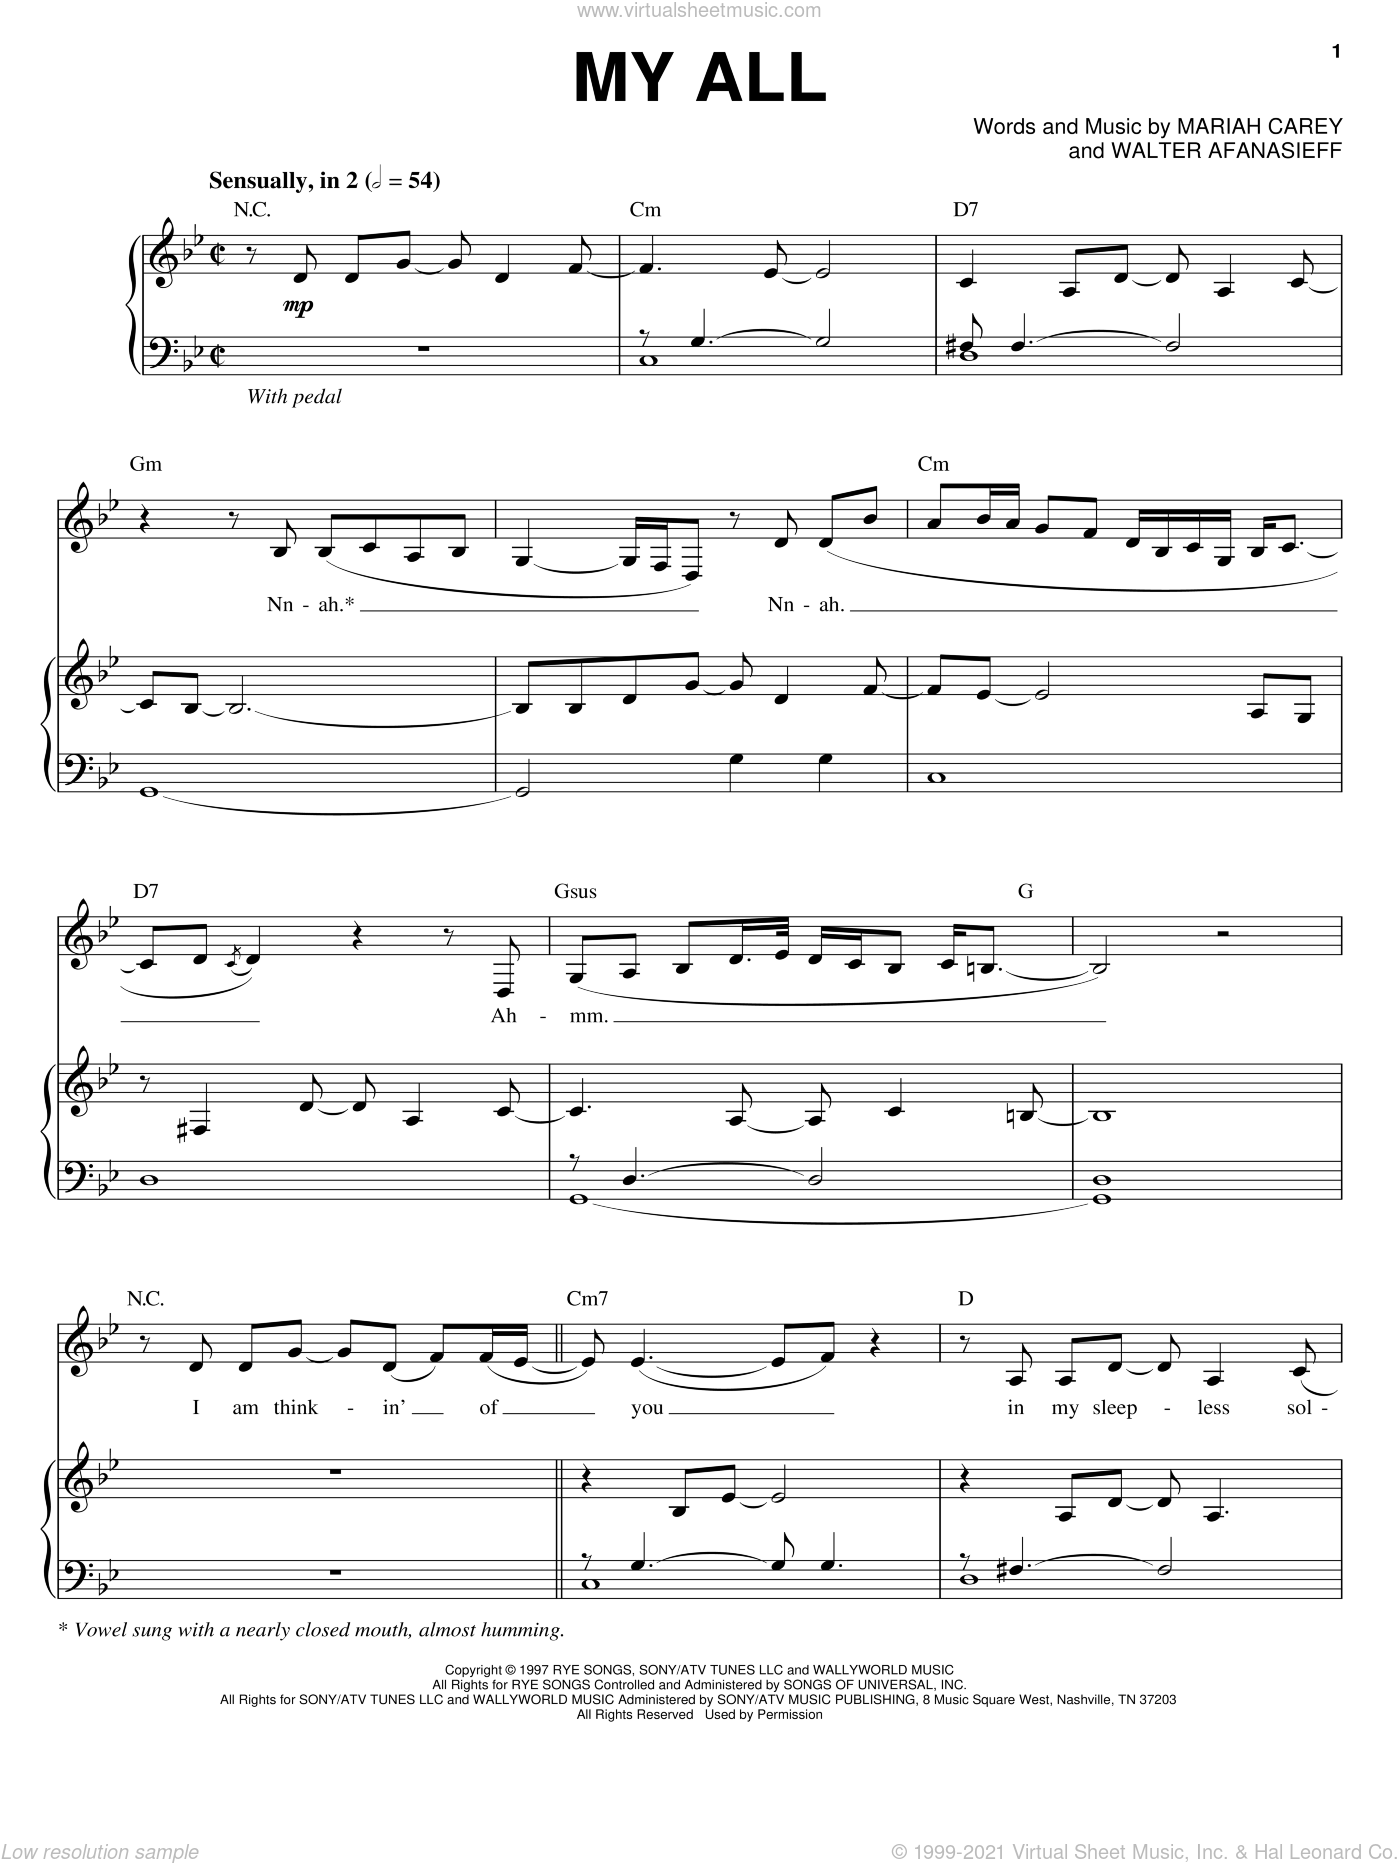 My All sheet music for voice, piano or guitar by Walter Afanasieff